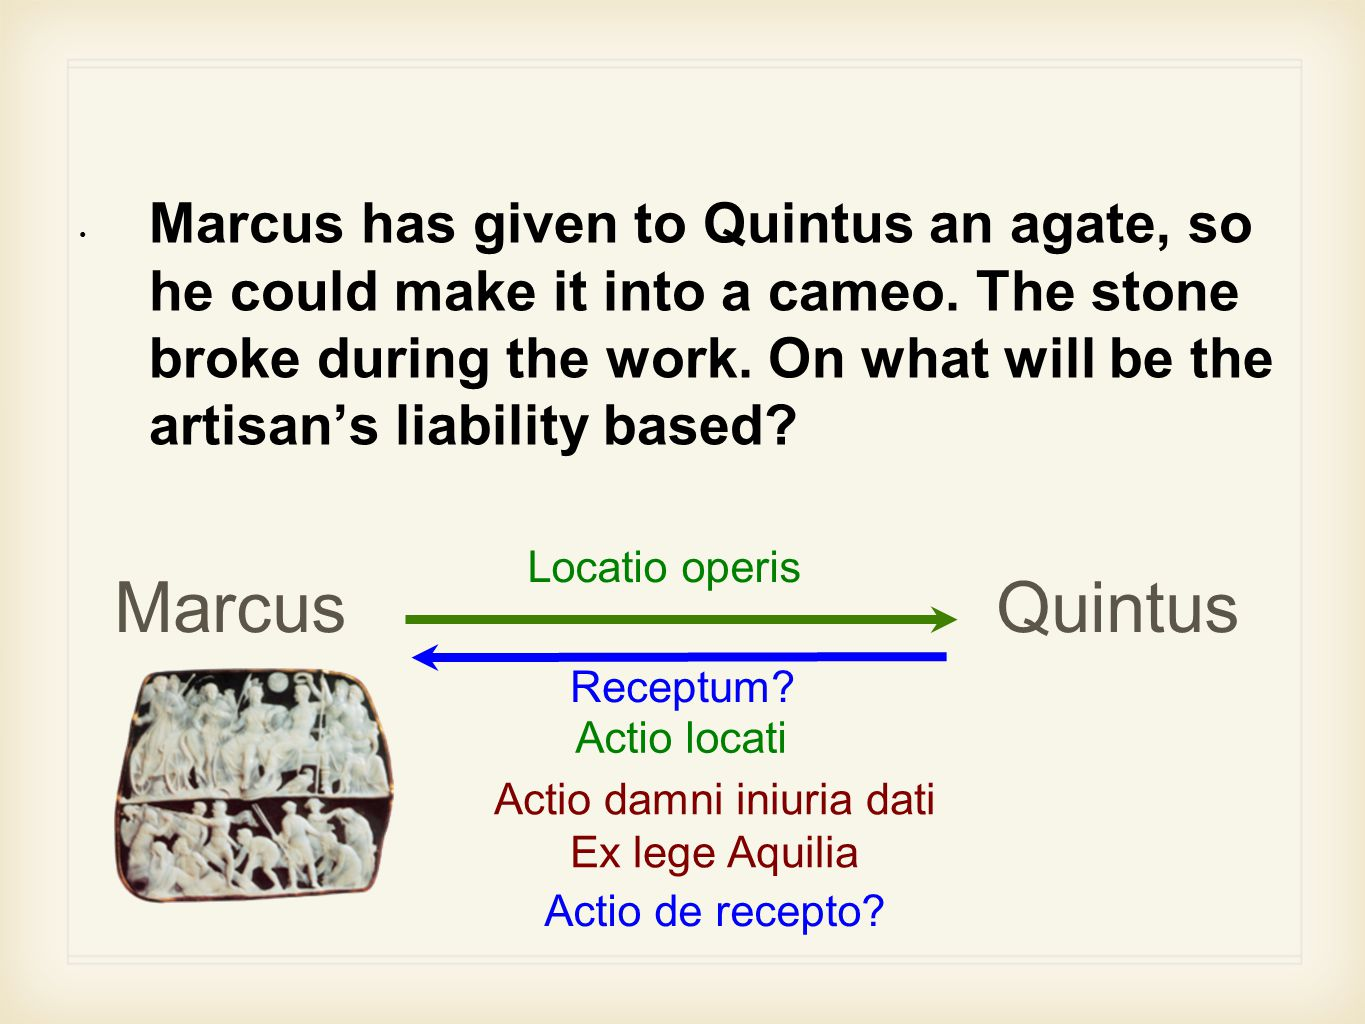 Marcus has given to Quintus an agate, so he could make it into a cameo.